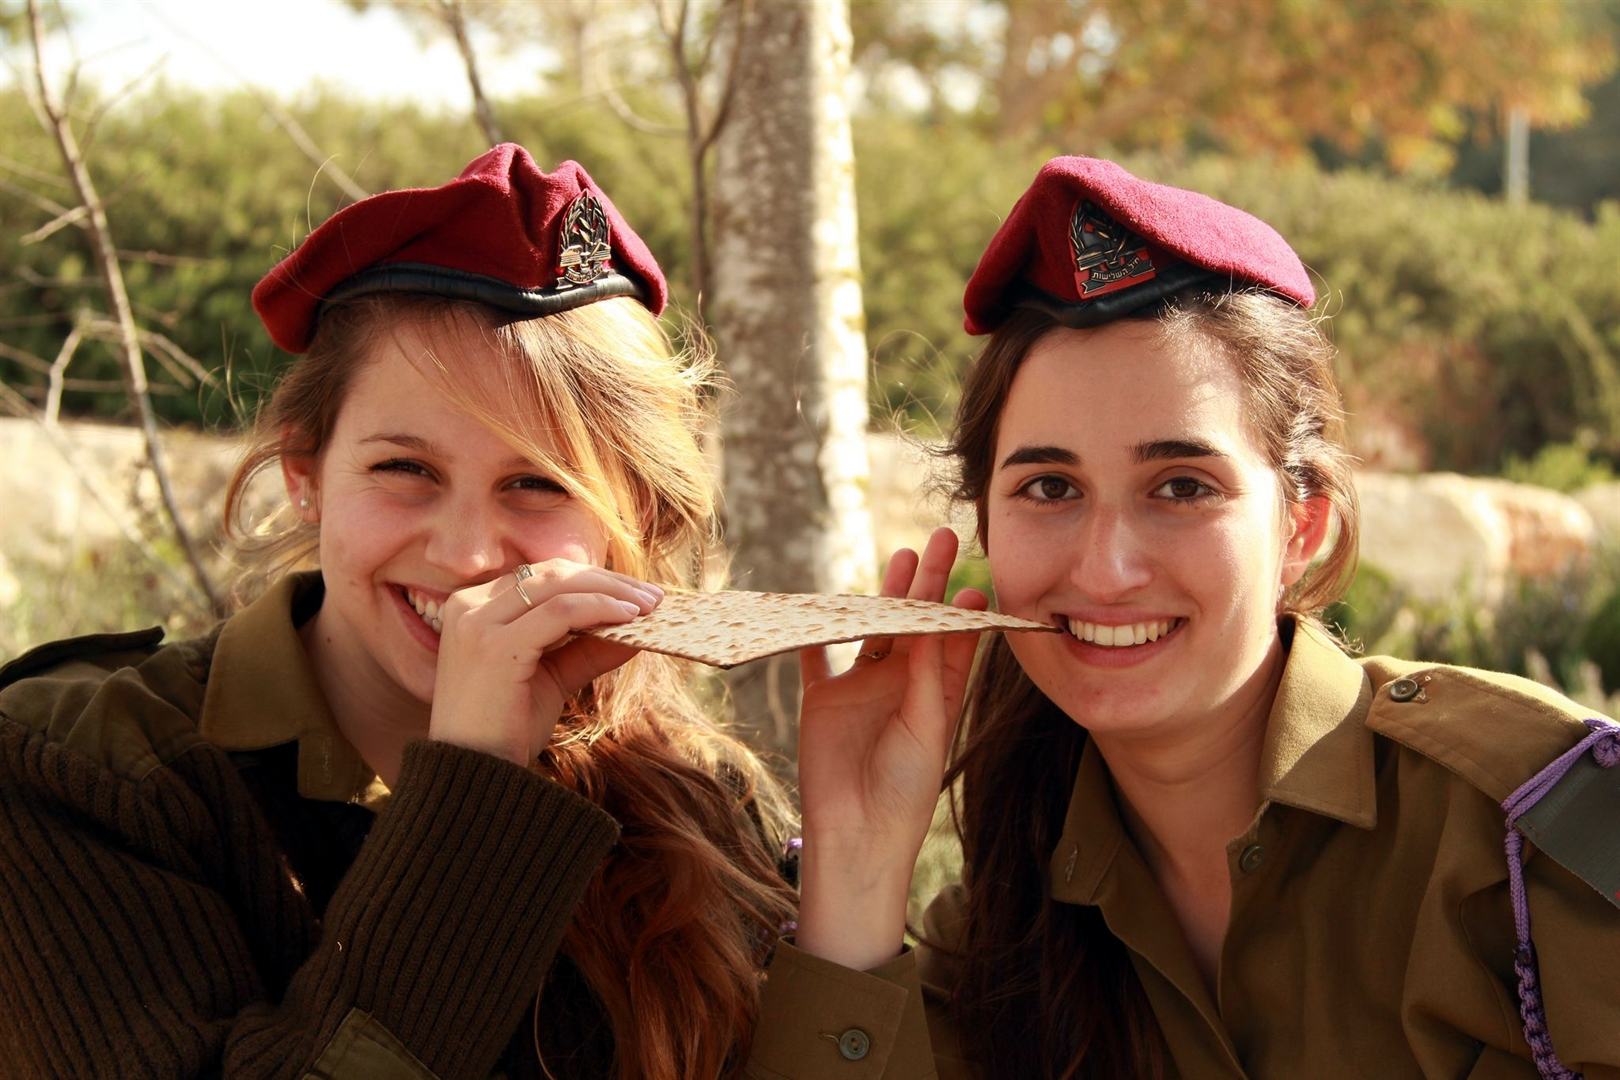 Israel Defense Forces soldiers pose with a piece of matzah in the field.  (IDF photo)